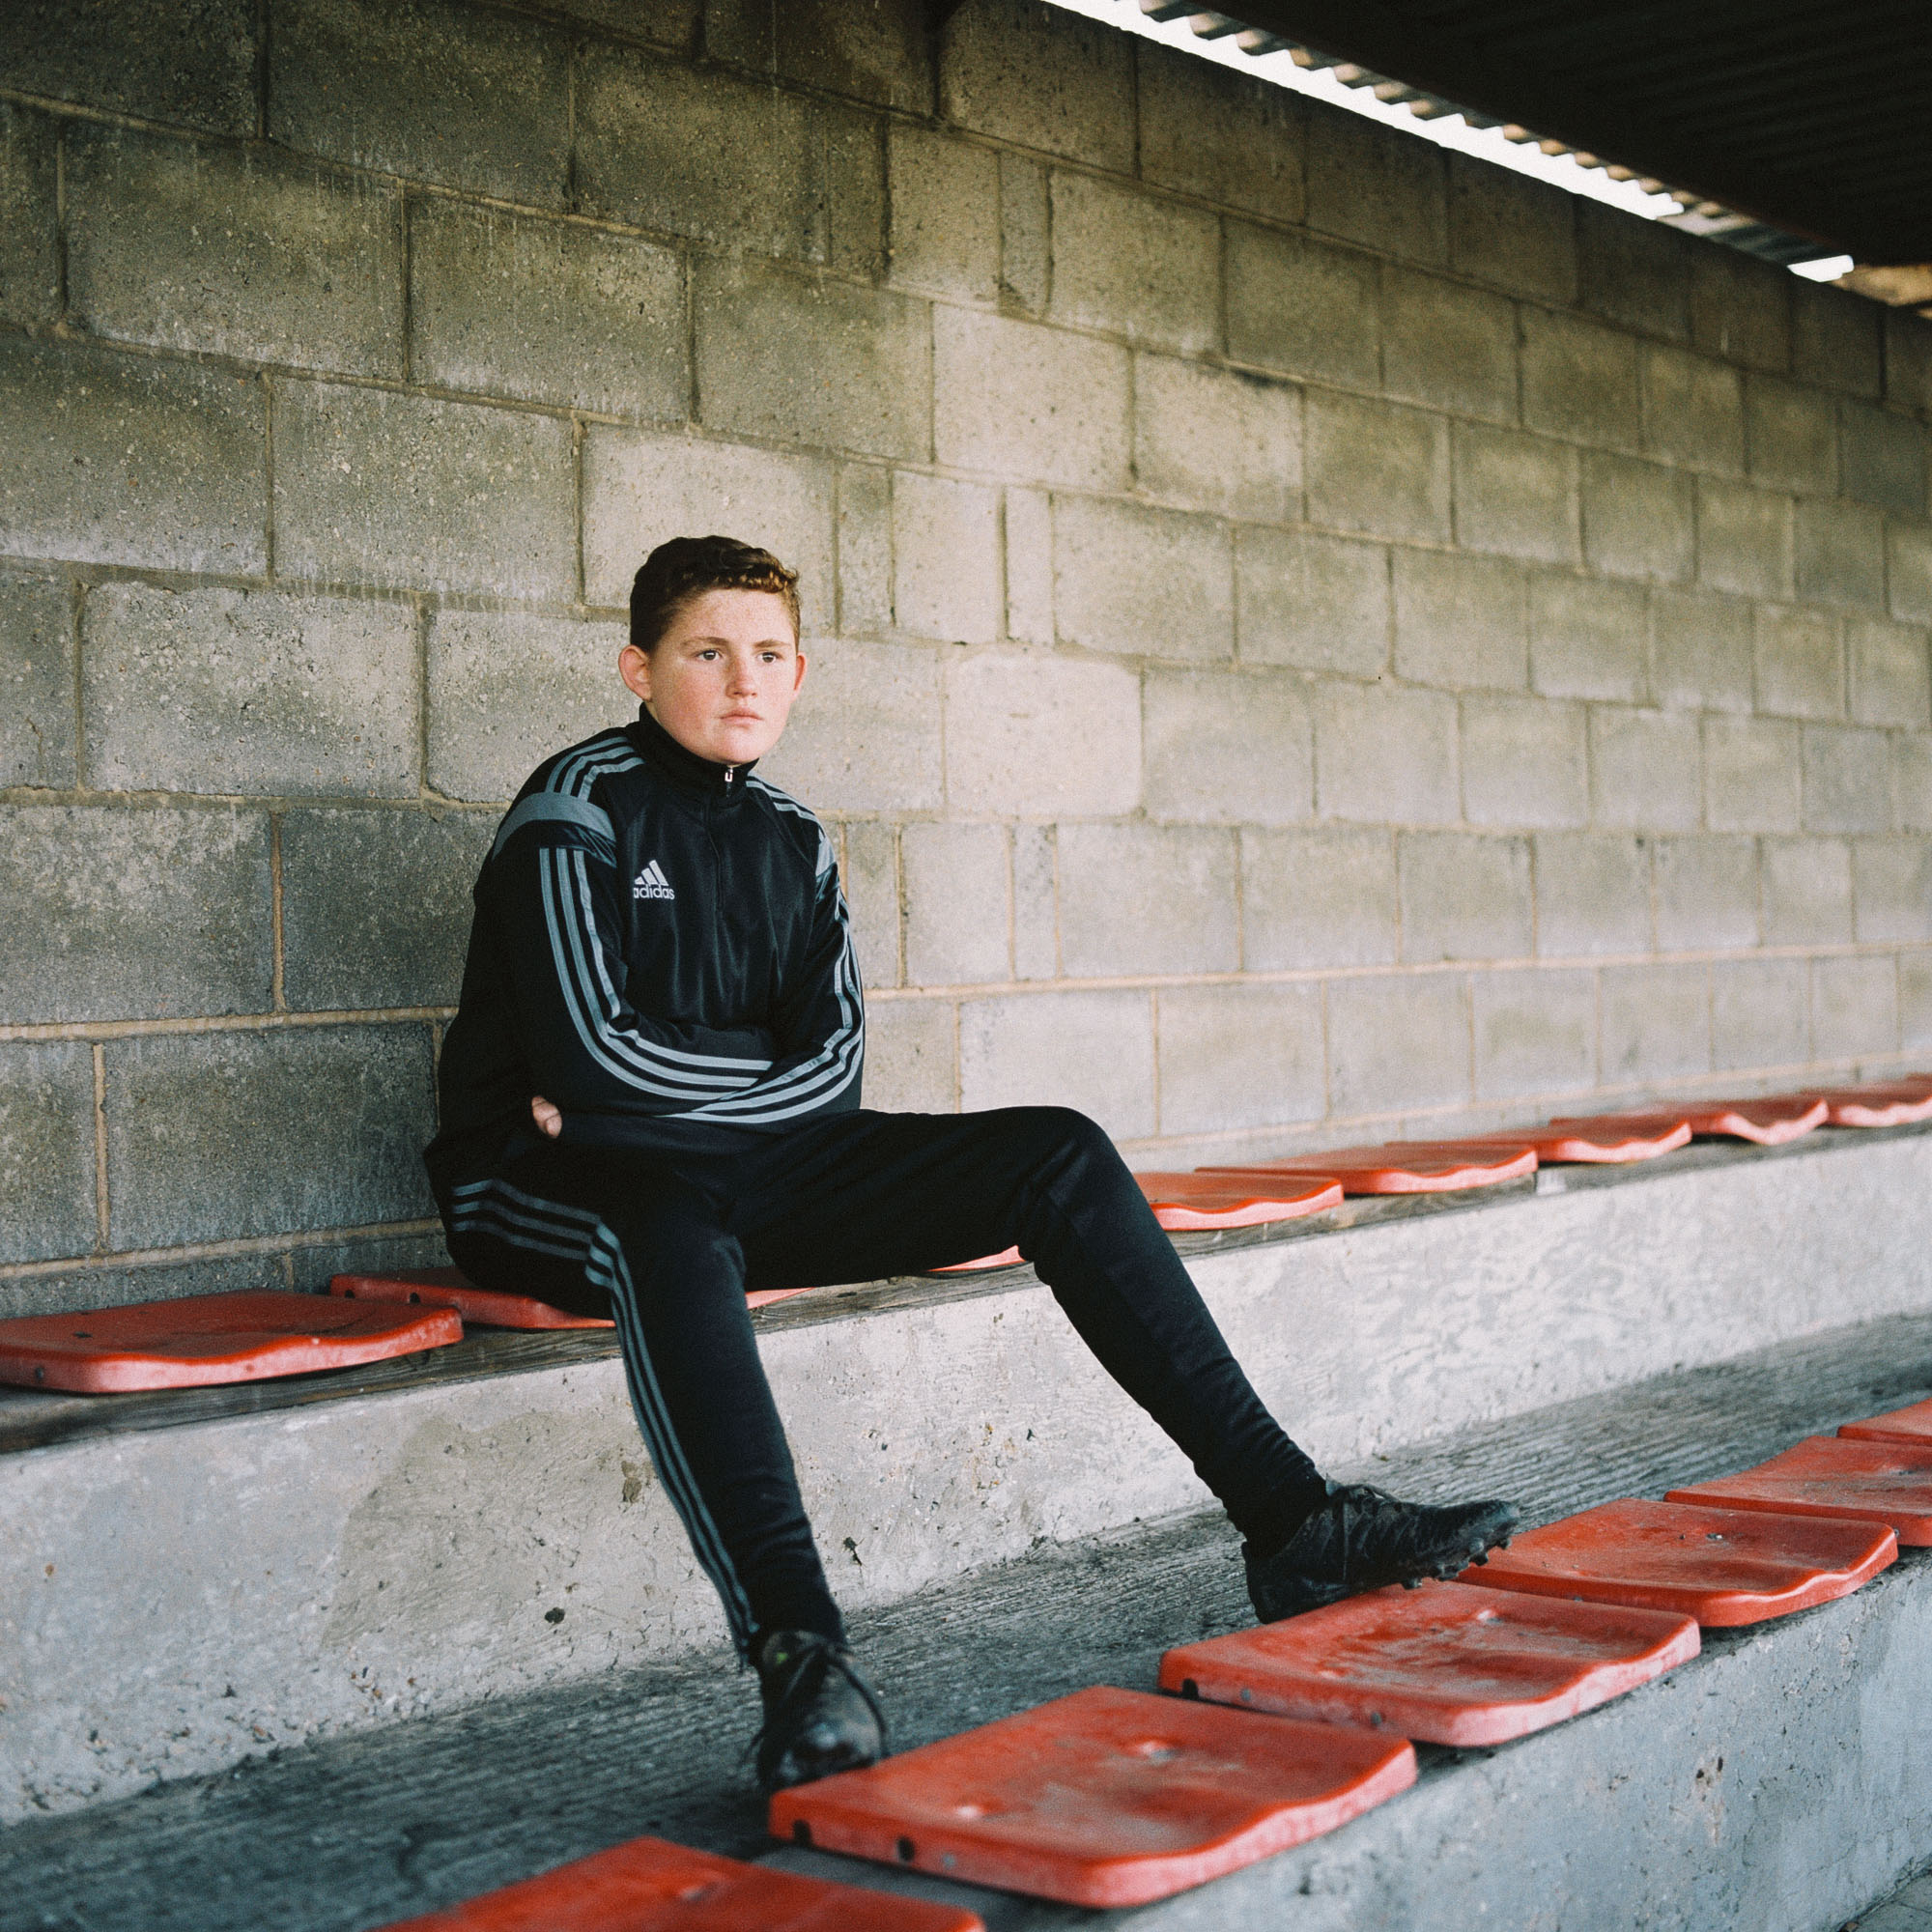 Tilbury Town FC supporter Liam Dawson watches his side play against Haringey Borough FC at Chadfields